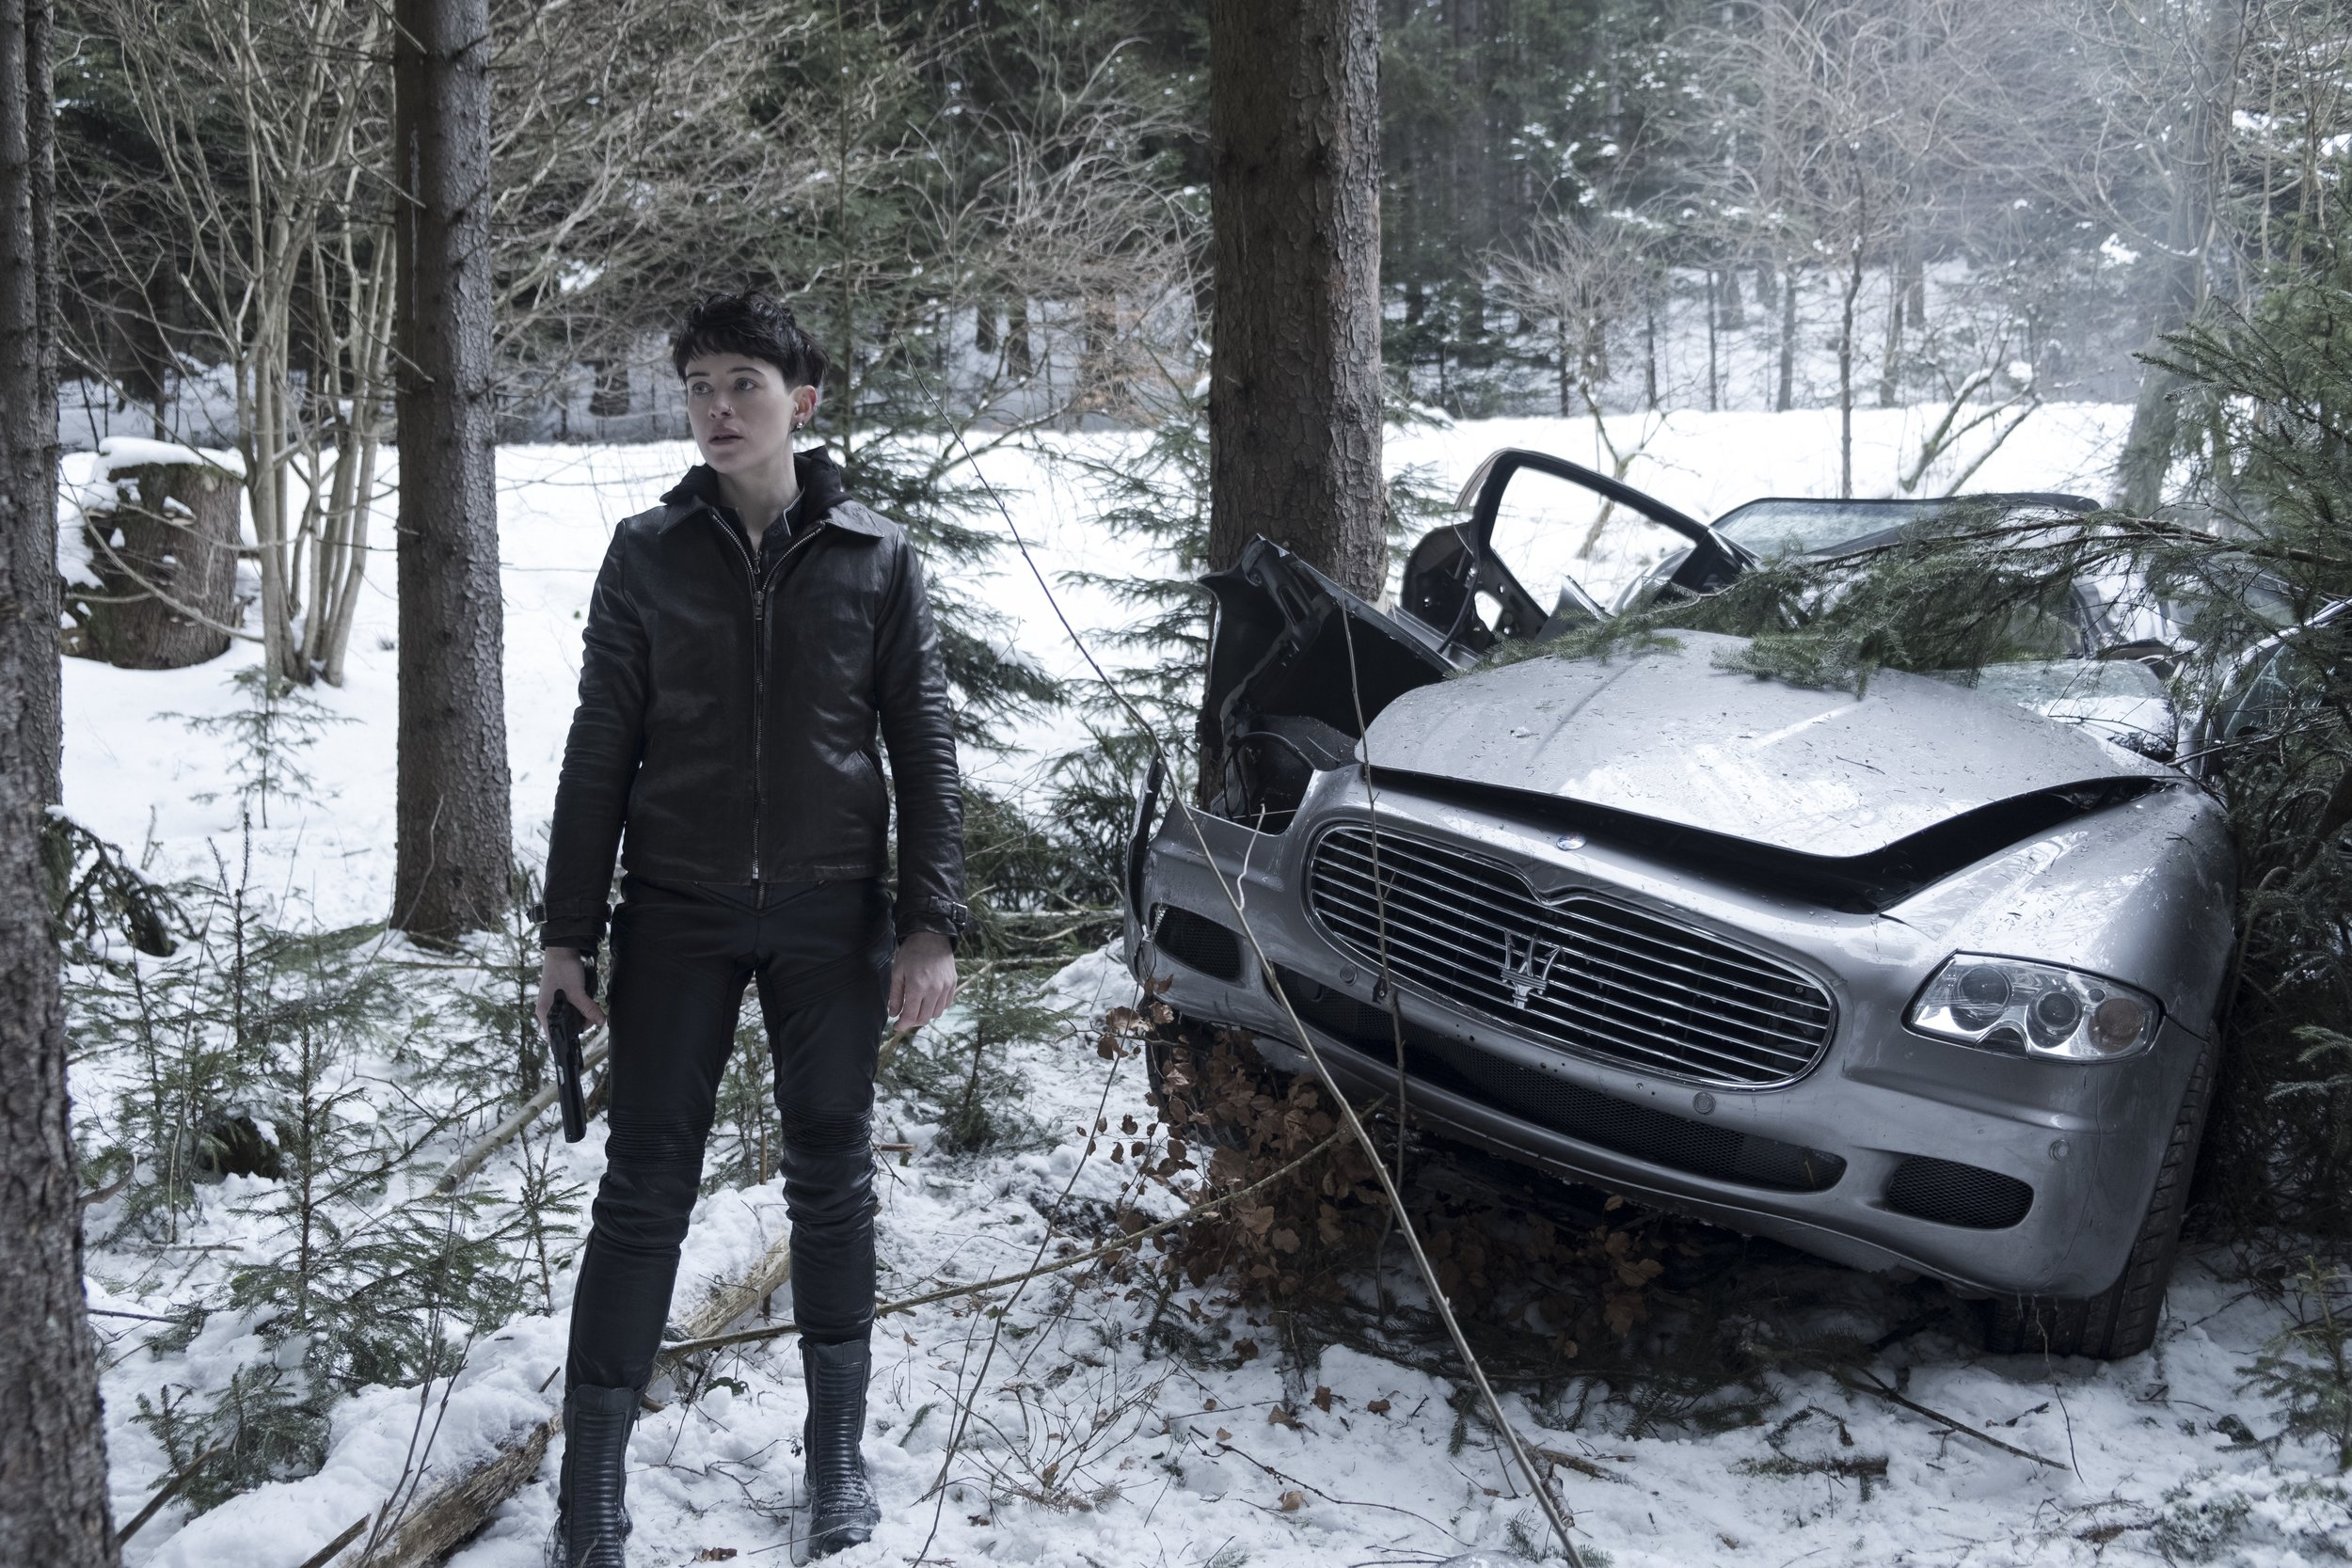 Haunted street kid no more: Lisbeth Salander (Claire Foy) kills cars and people with impunity.